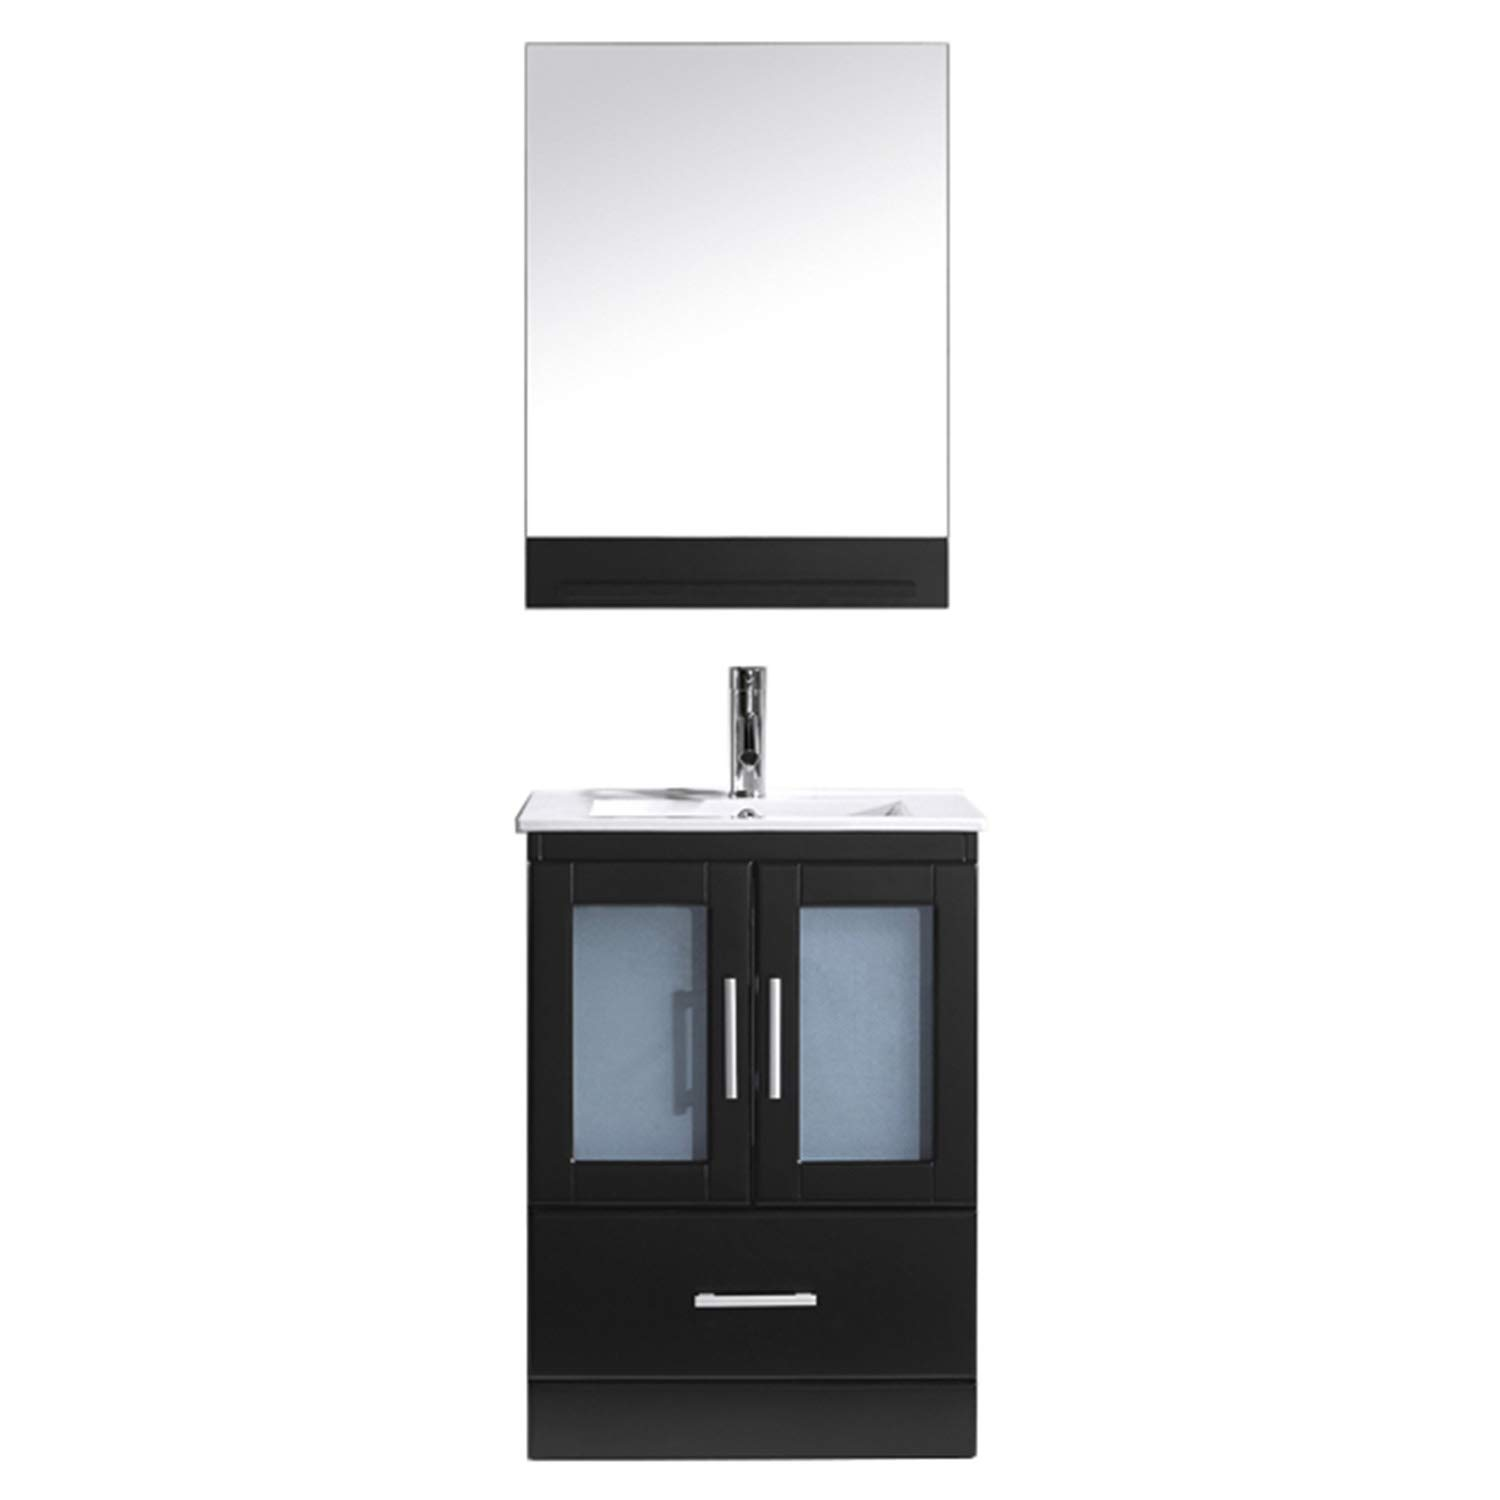 Virtu USA Single Bathroom Vanity in Espresso with White Ceramic Top and Square Sink with Brushed Nickel Faucet and Mirror